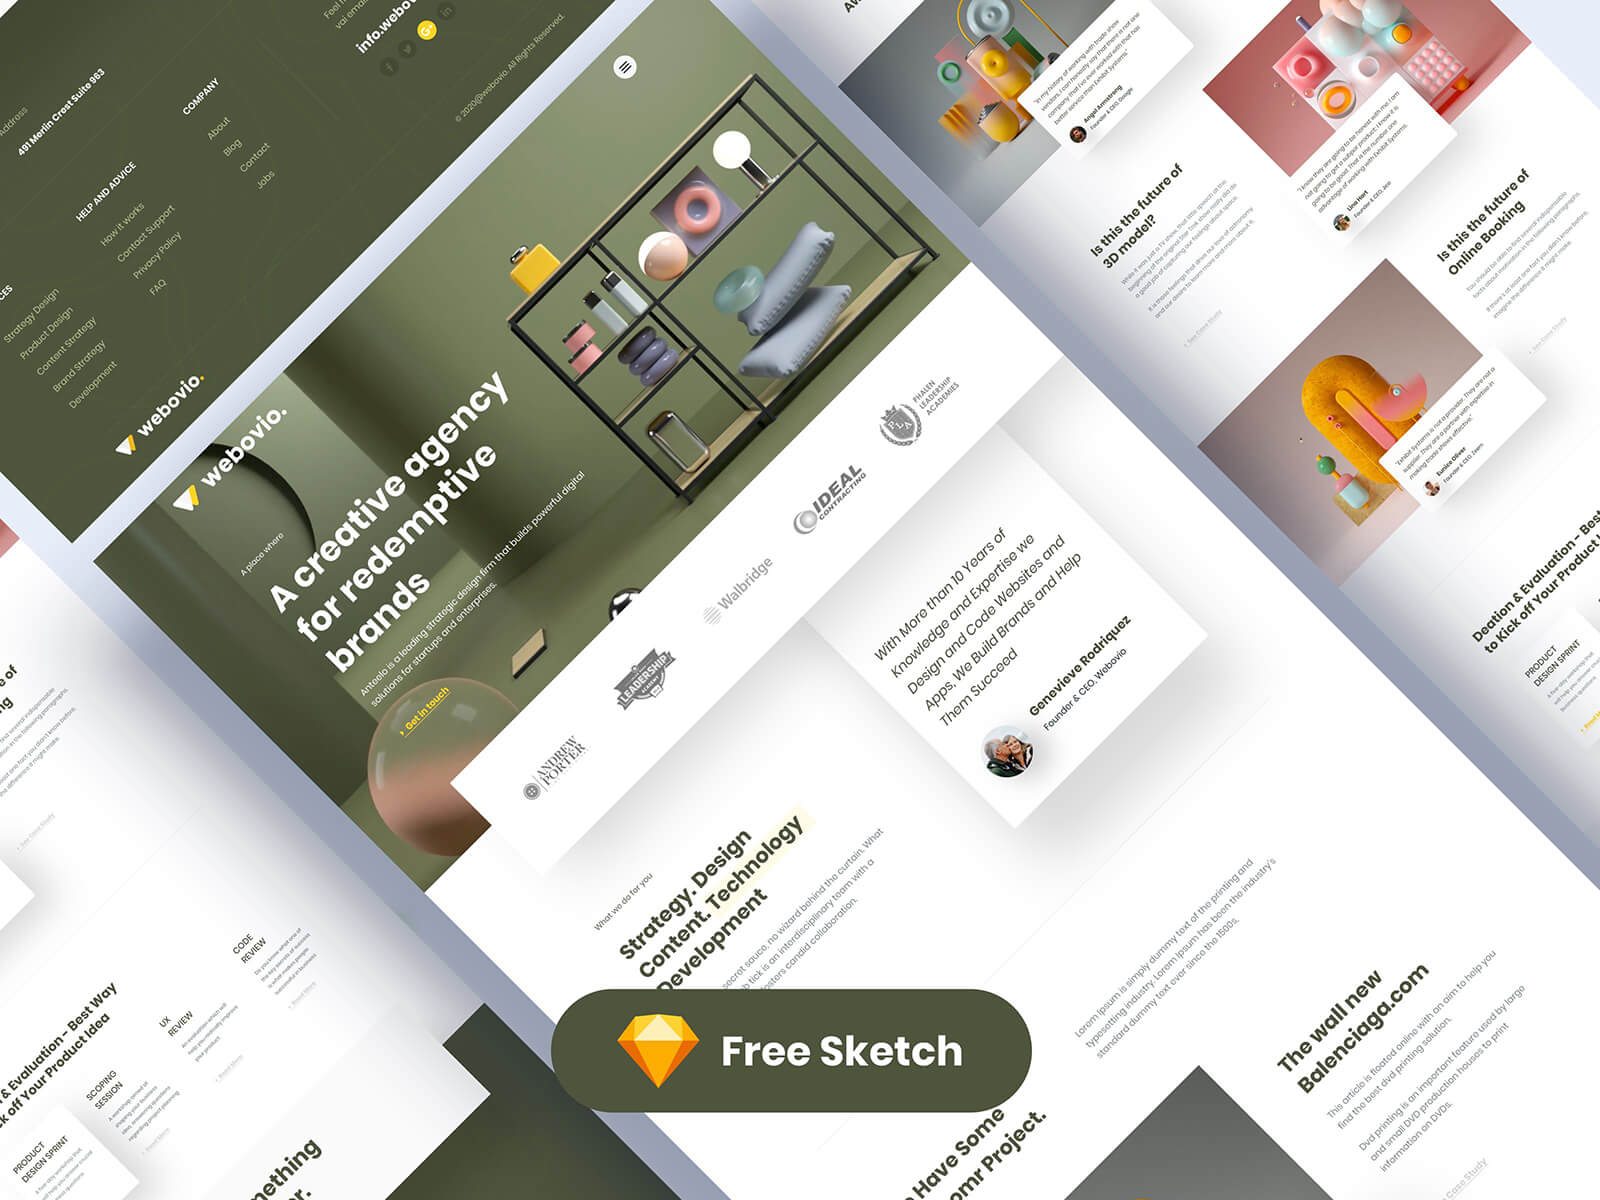 Landing page design for a creative agency website